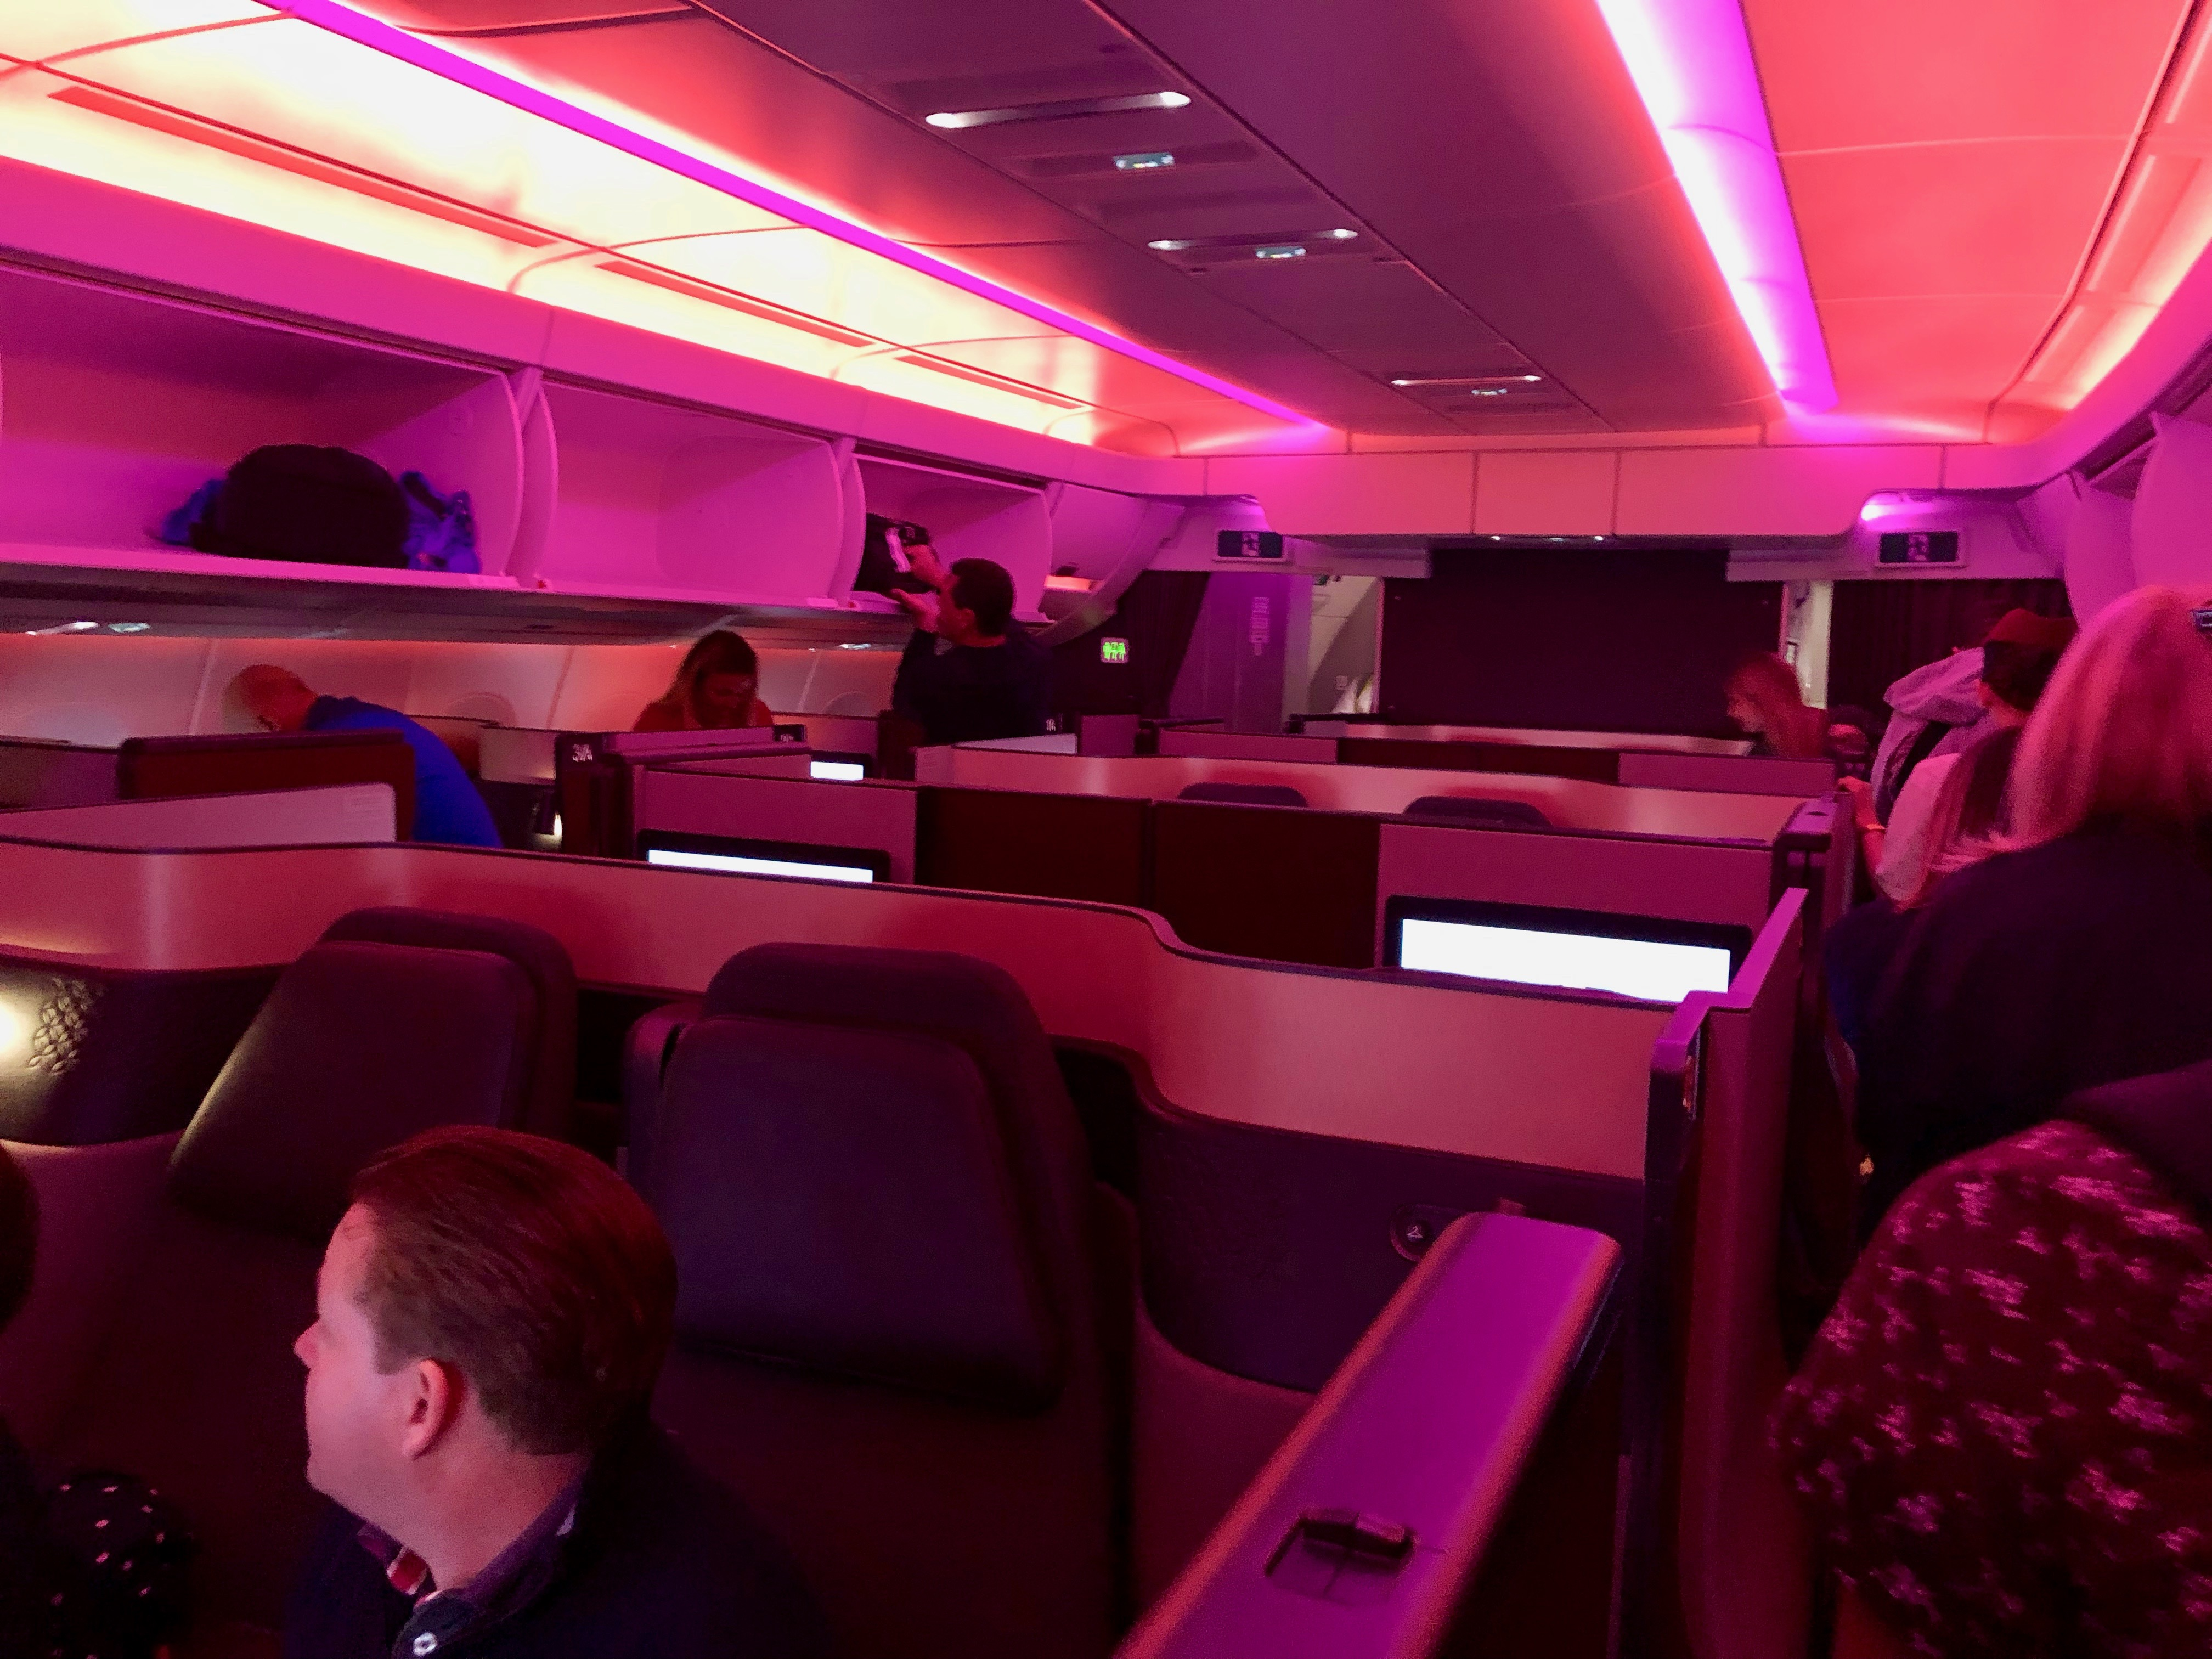 Qatar Airways A350-900 Qsuite business class cabin